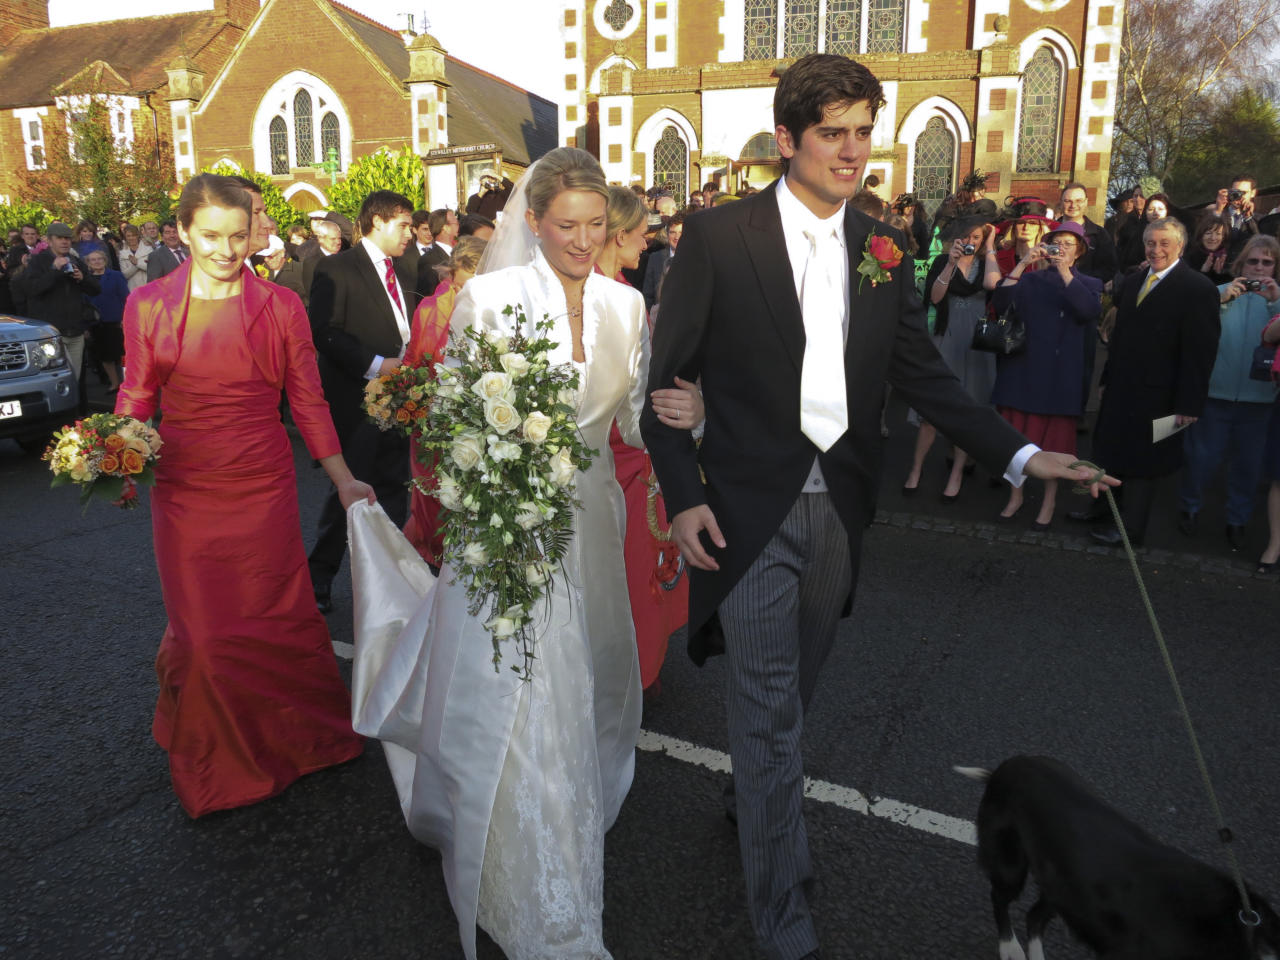 STEWKLEY, UNITED KINGDON - DECEMBER 31:  English international cricketer Alastair Cook gets married on New Year's Eve to Alice Hunt at Stewkley Methodist Church on December 31, 2011 in Stewkley, England.  (Photo by Stephen Munday/Getty Images)